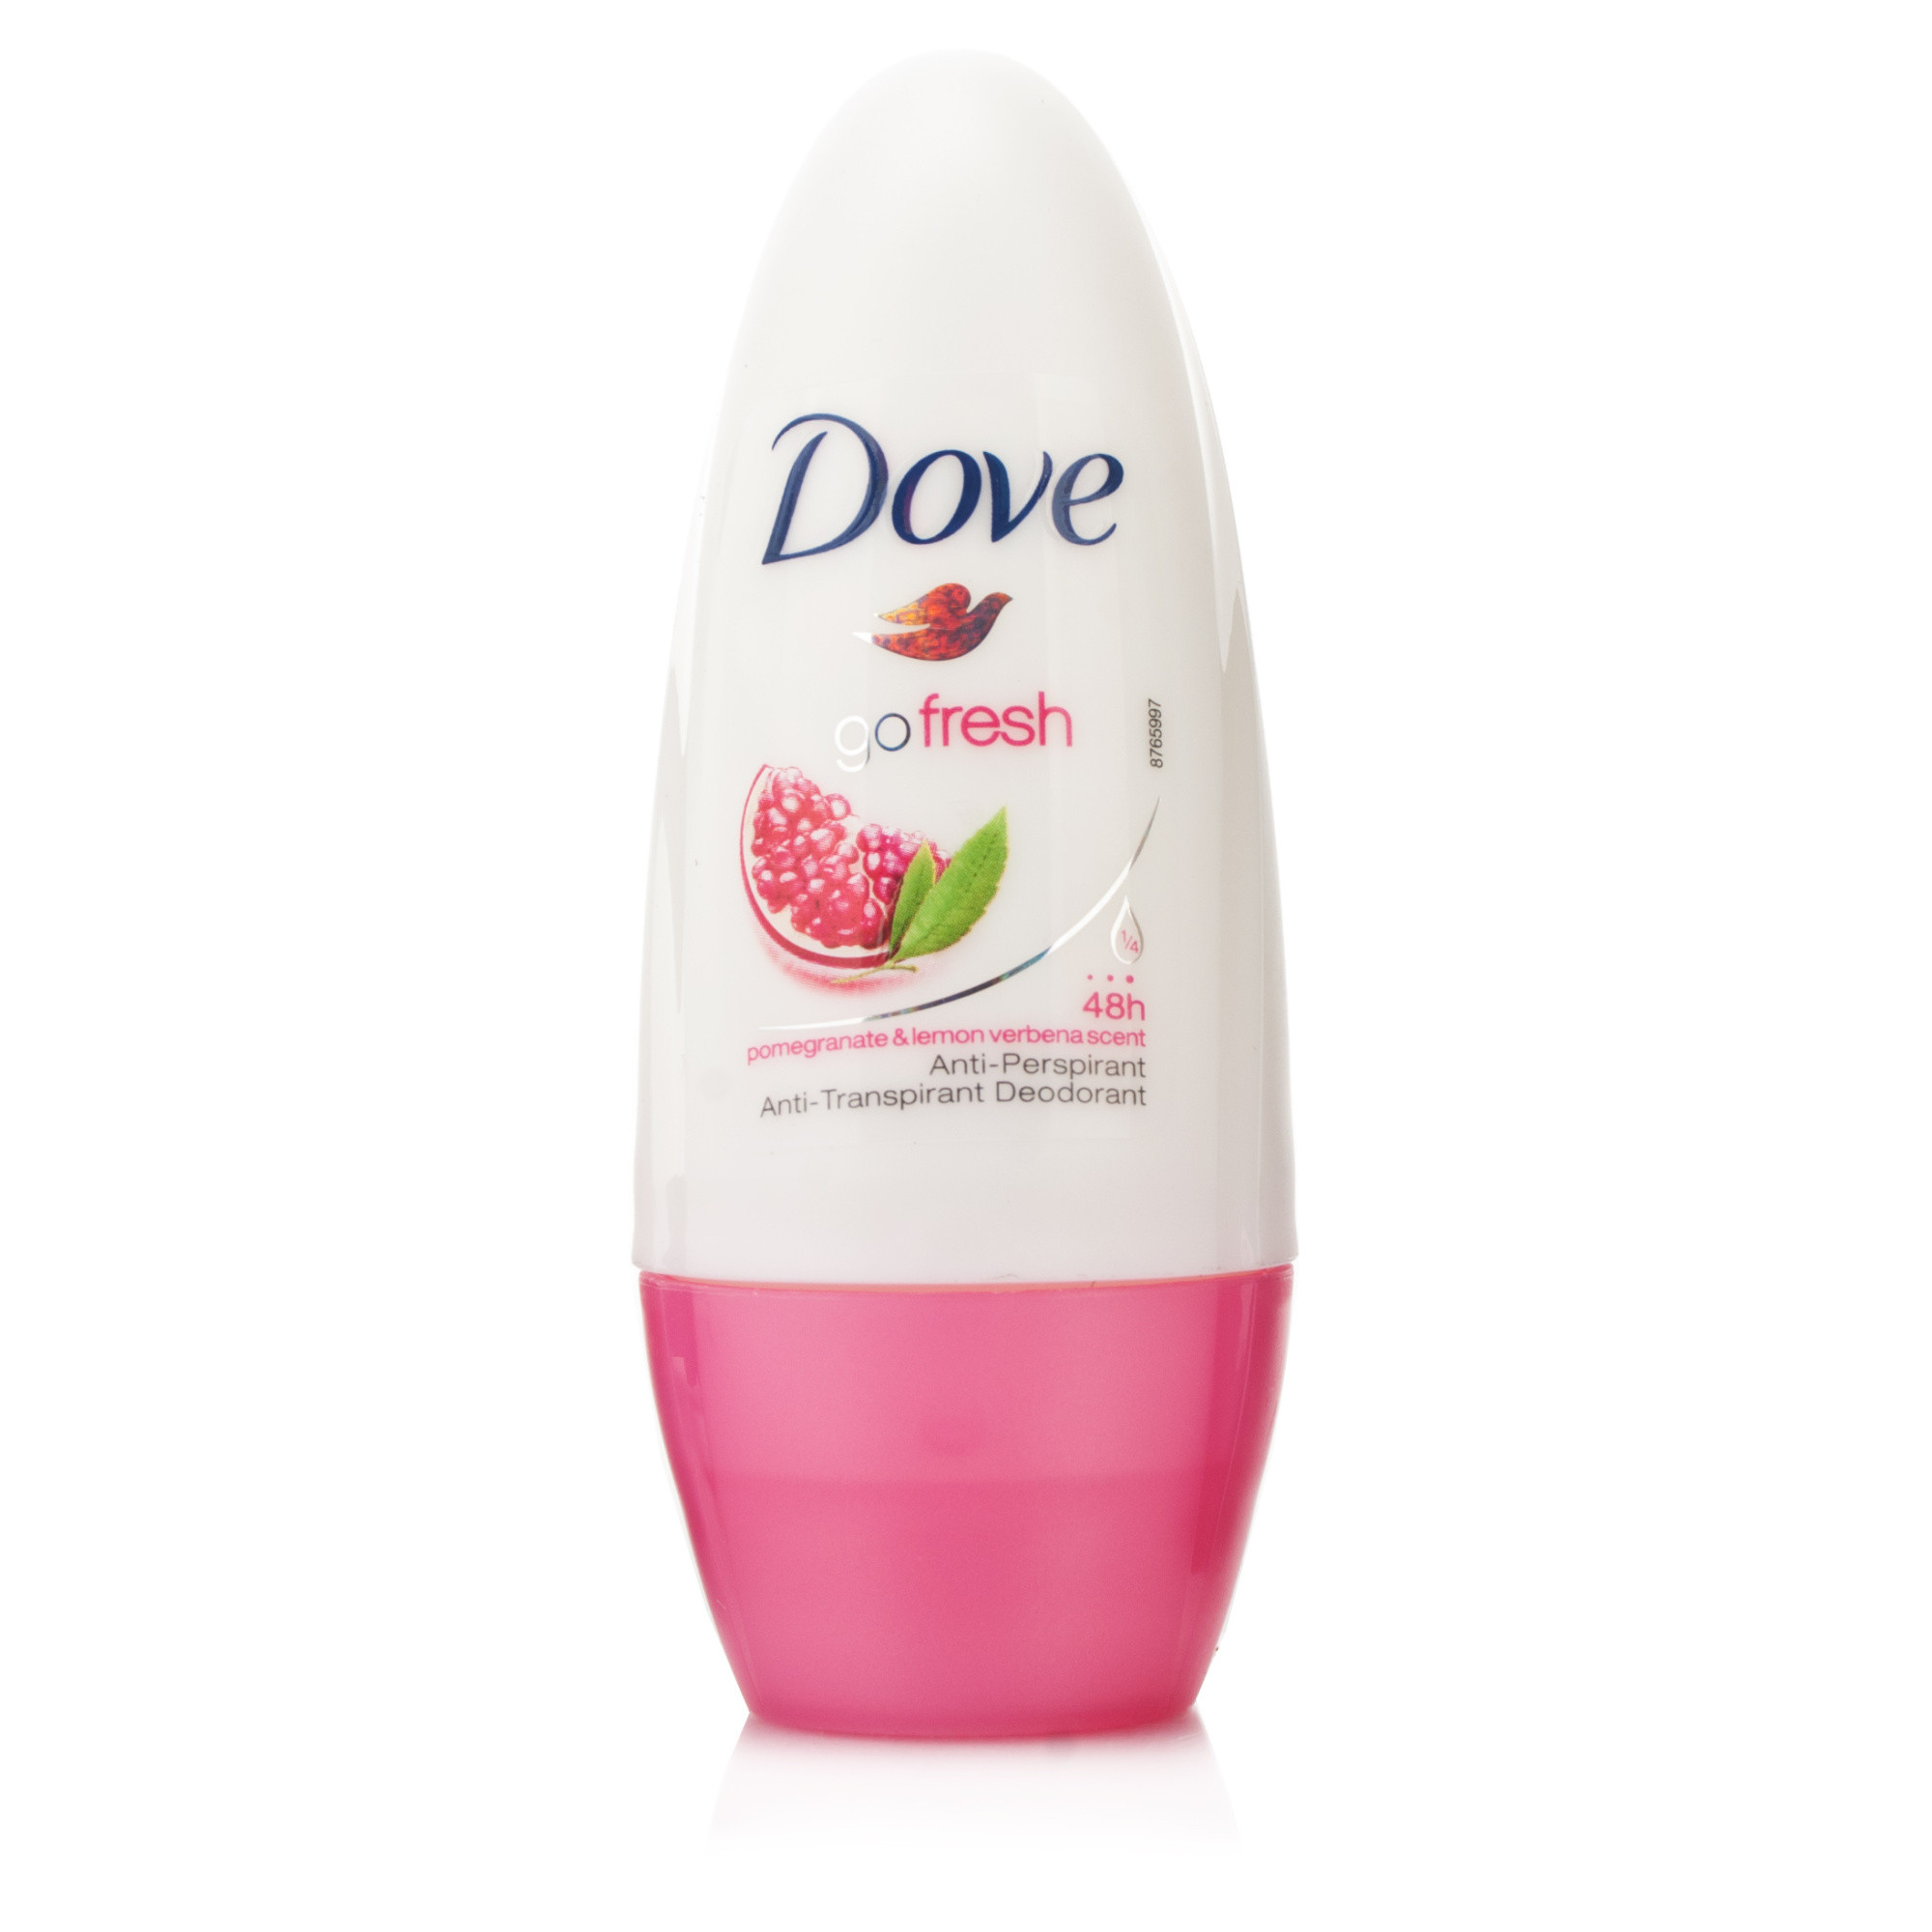 Dove Go Fresh Pomegranate & Lemon Verbena Anti-Perspirant Deodorant Roll-On